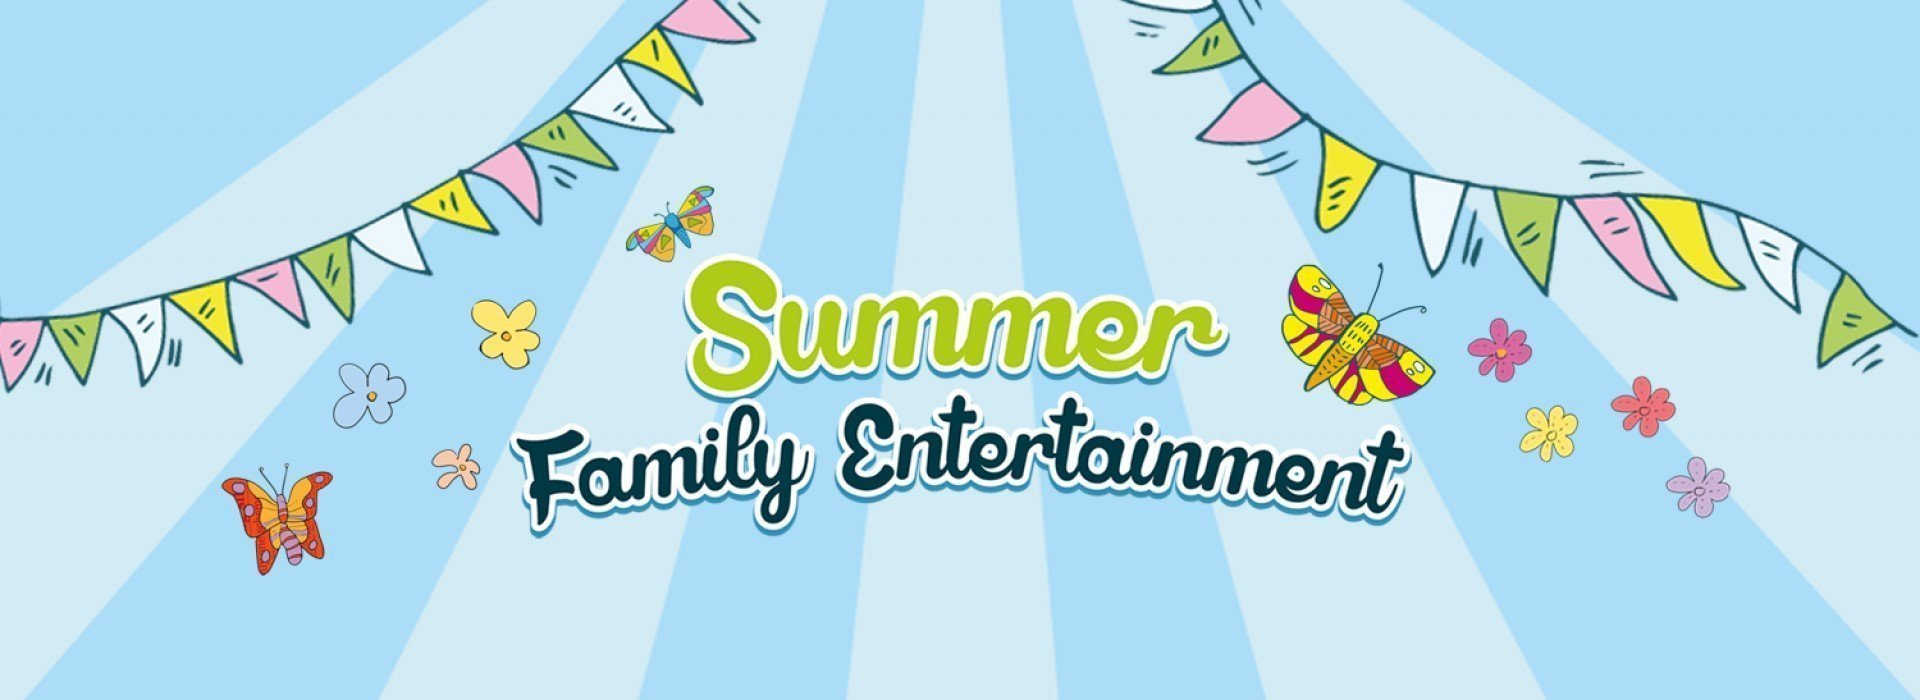 Summer Family Entertainment Blenheim Palace